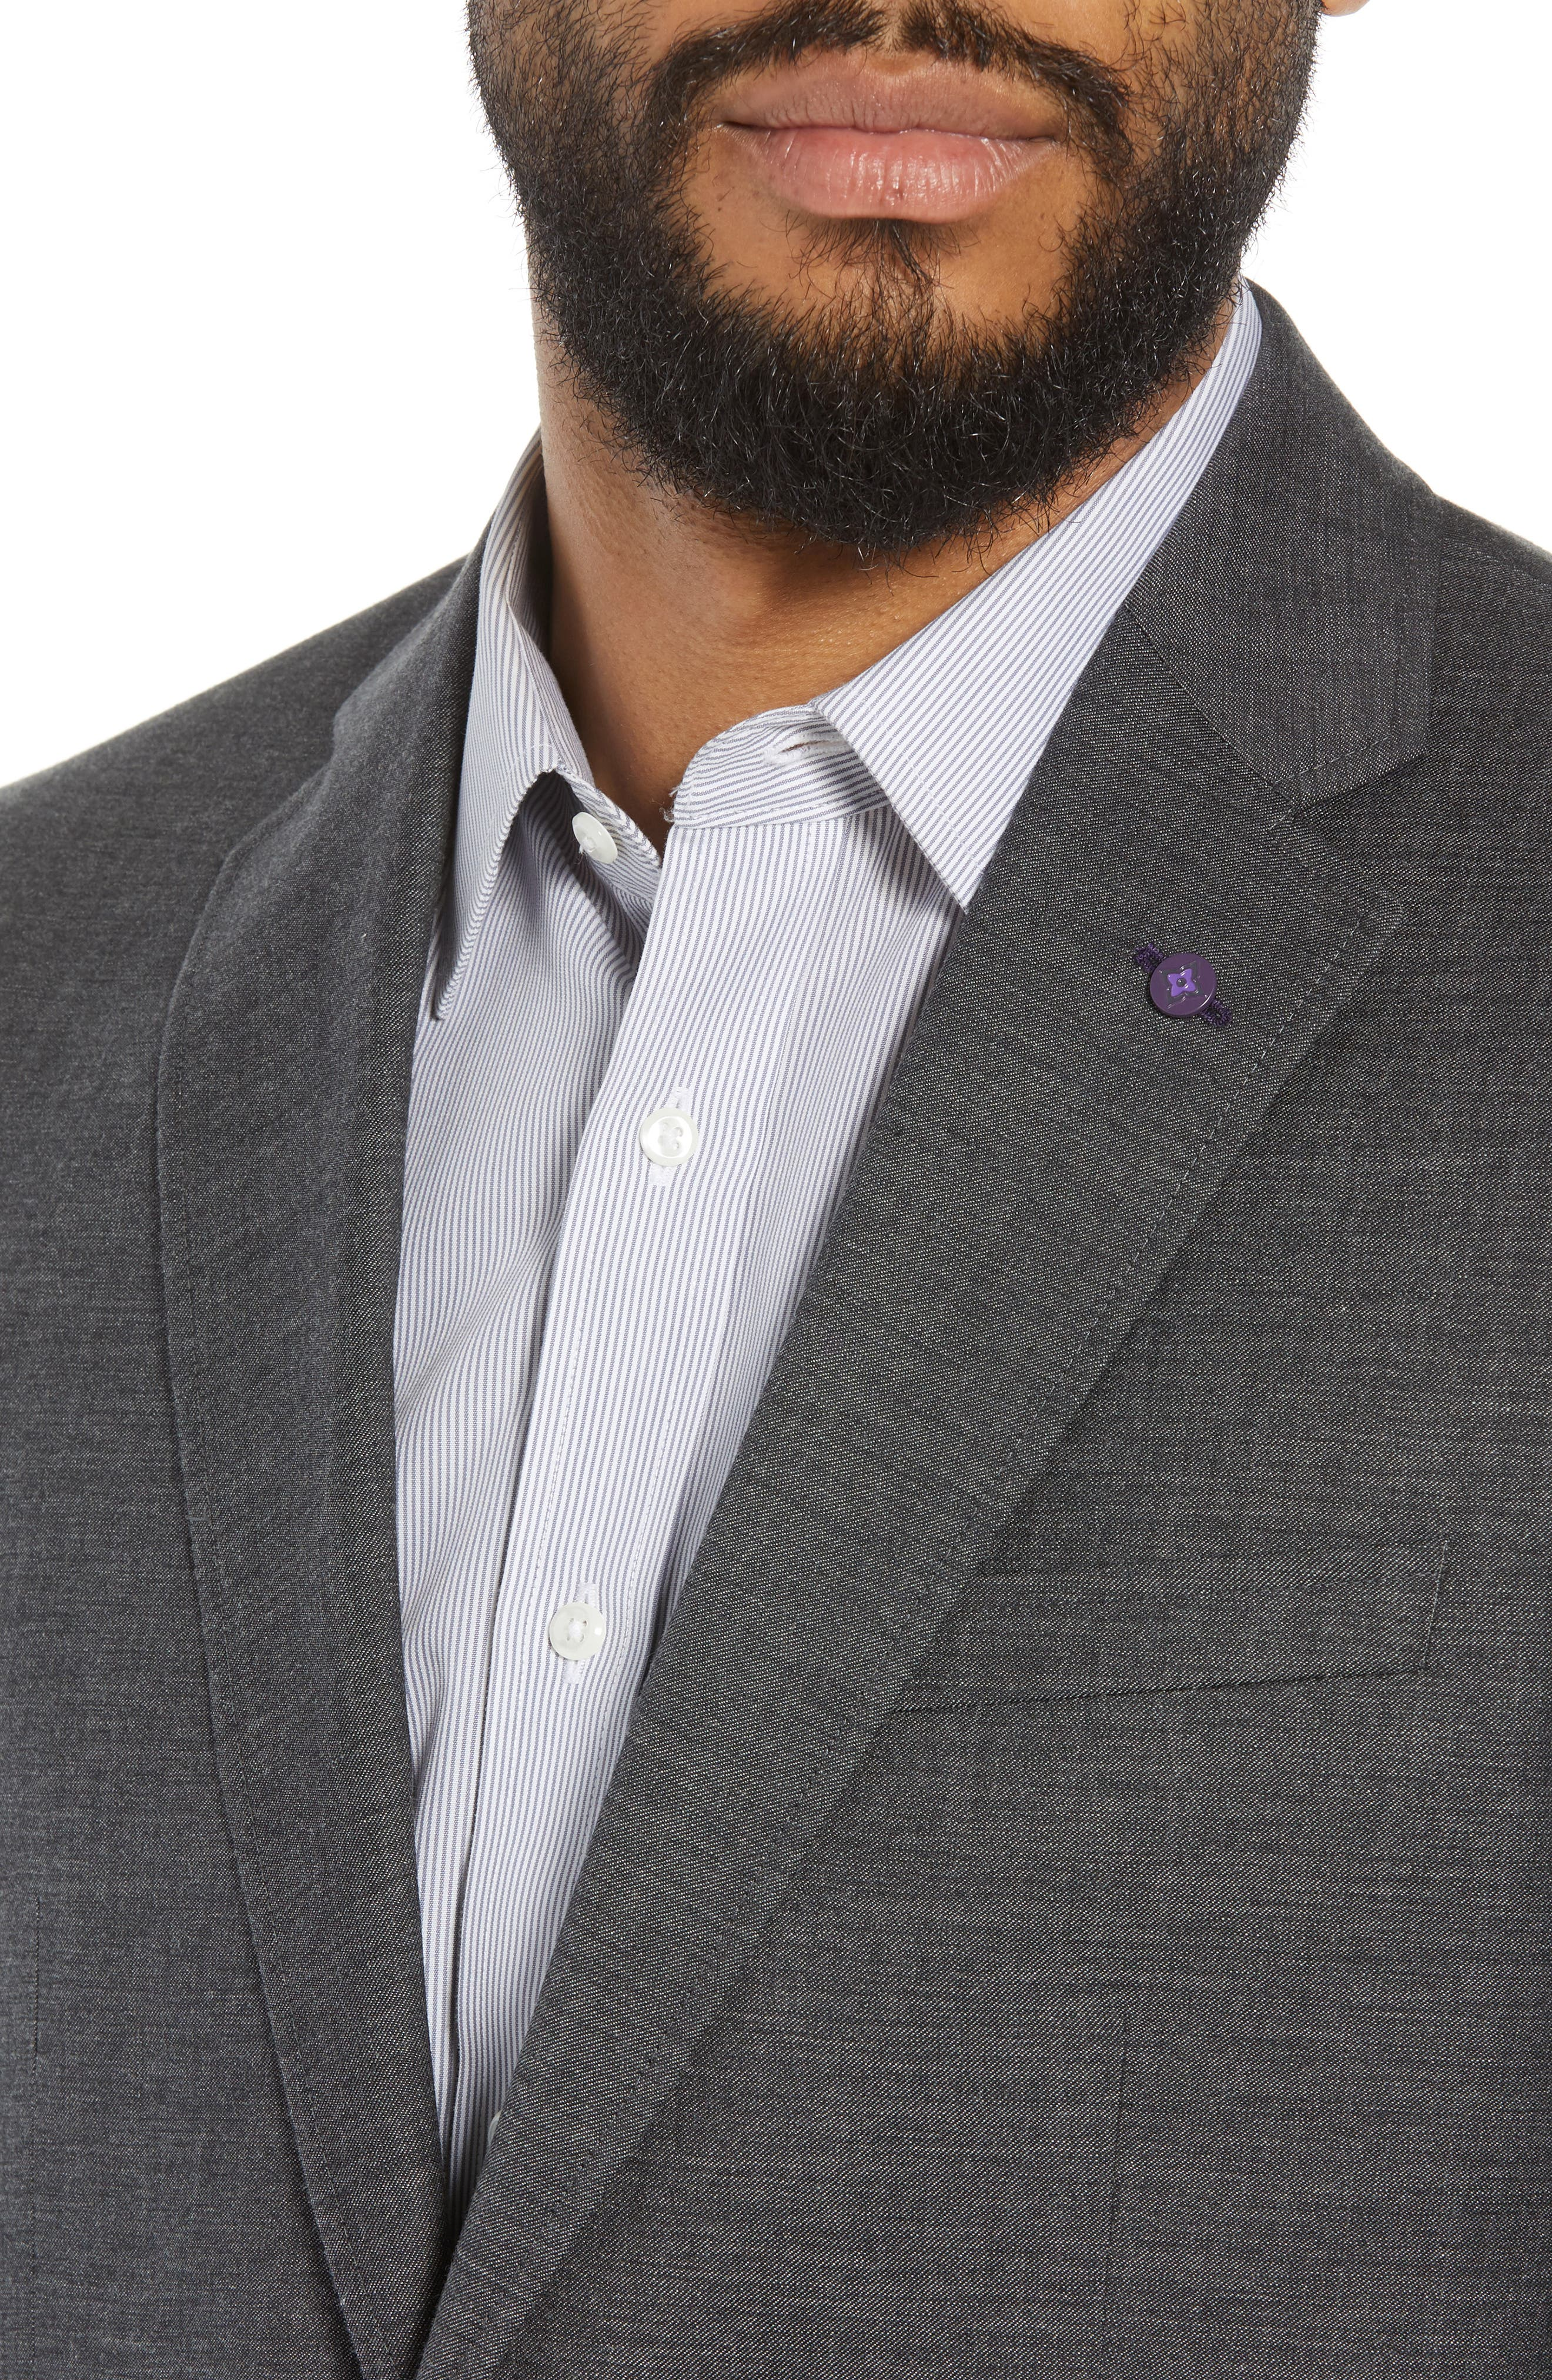 Jay Trim Fit Heathered Wool & Cotton Sport Coat,                             Alternate thumbnail 4, color,                             020